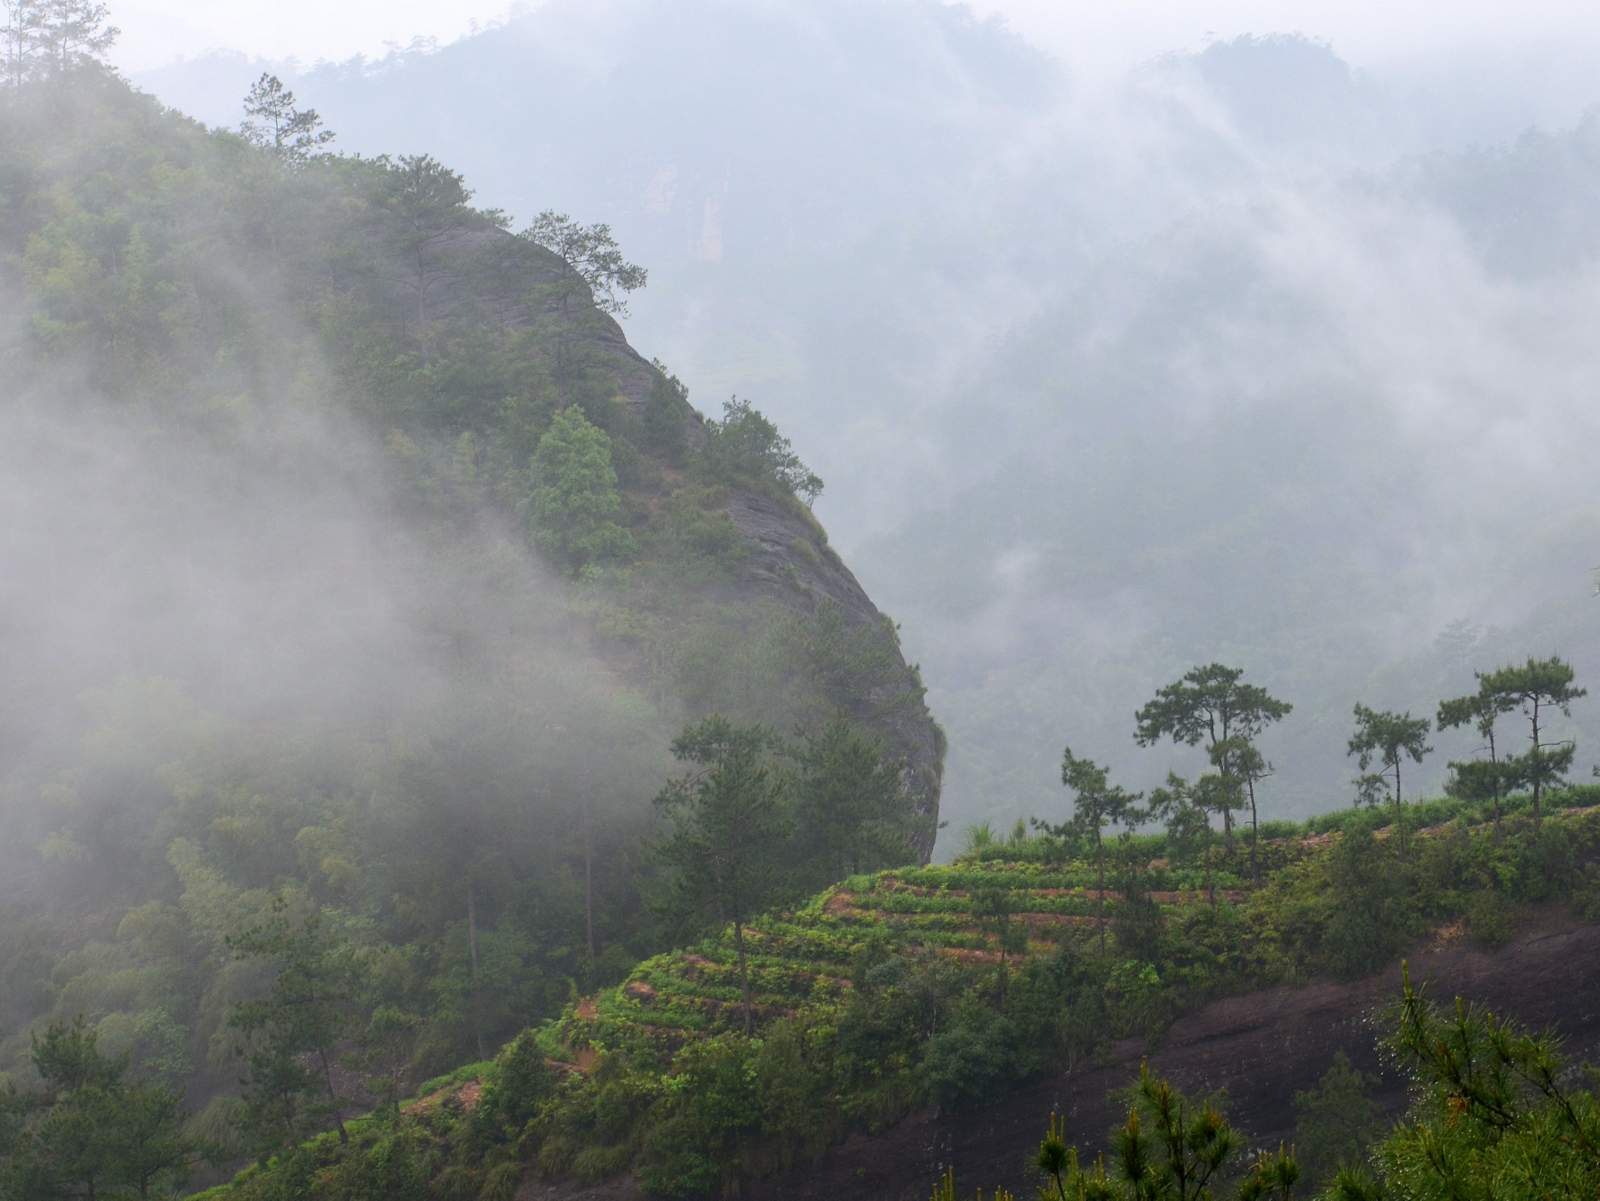 Wuyi Mountain area is genial in weather, warm in winter and cool in summer, belonging to the subtropical area, with an average temperature range of 18 to below 18 degree Celsius. The volume of rain is abundant, with an annual rainfall of 2000 millimeters and an annual degree of humidity of 80%. The vegetation is lush and all year round the cloud and mist is perennially widespread. The tee trees are able to bear shadows and like the sunshine in both morning and evening in the remote mountains, hindered by the rocks of facing steady sunlight.